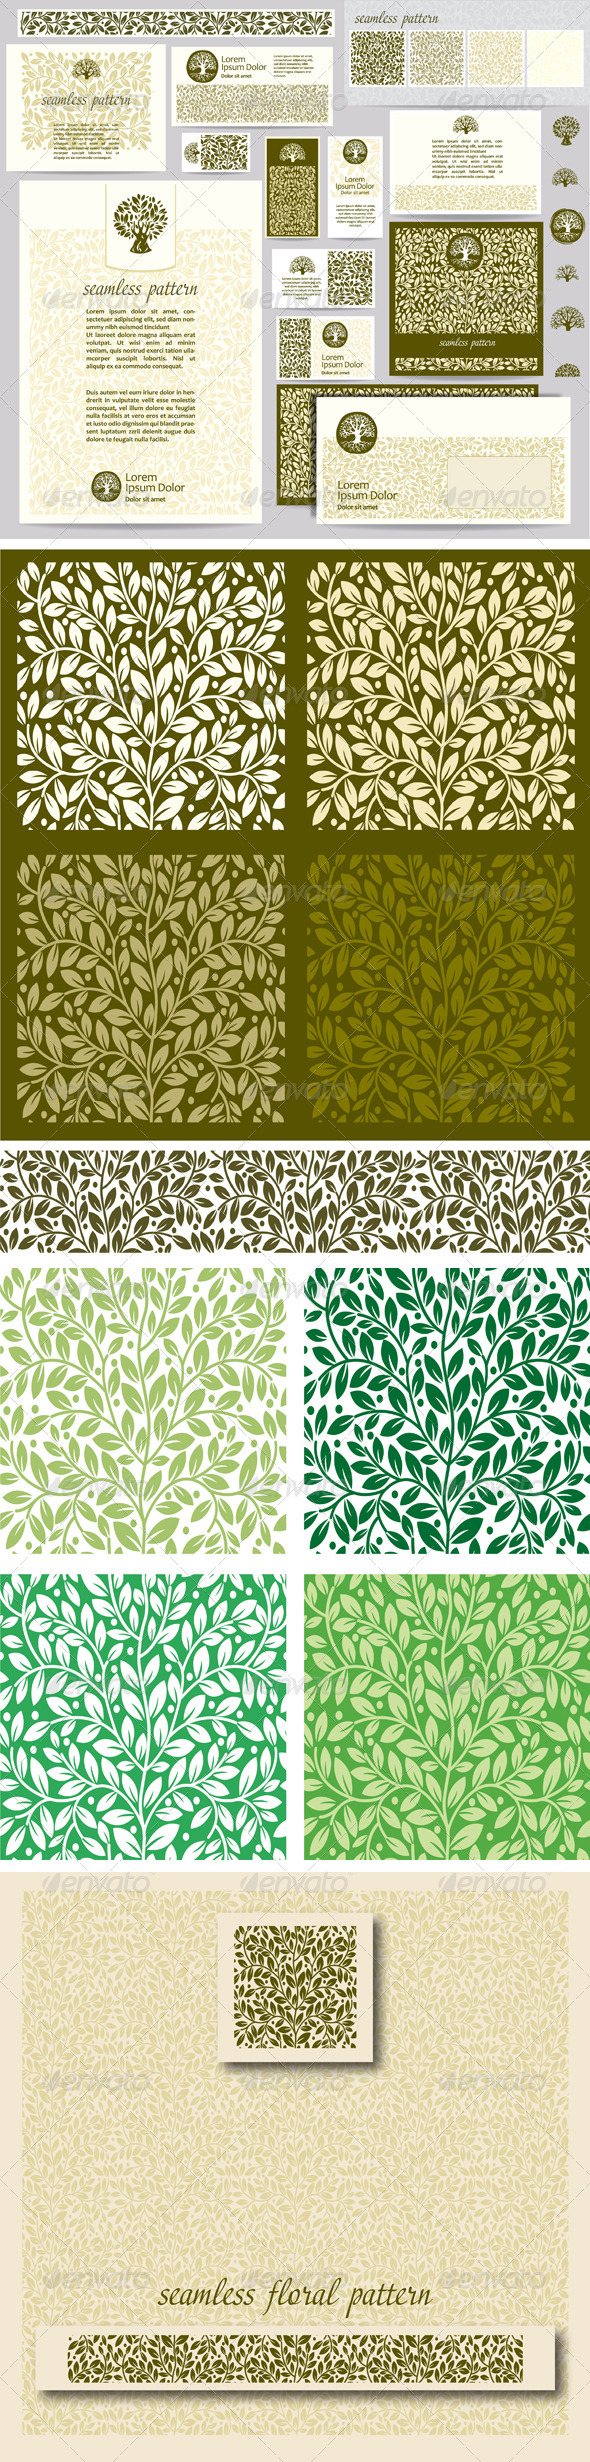 Identity Template with Leaf Seamless Pattern - Flowers & Plants Nature